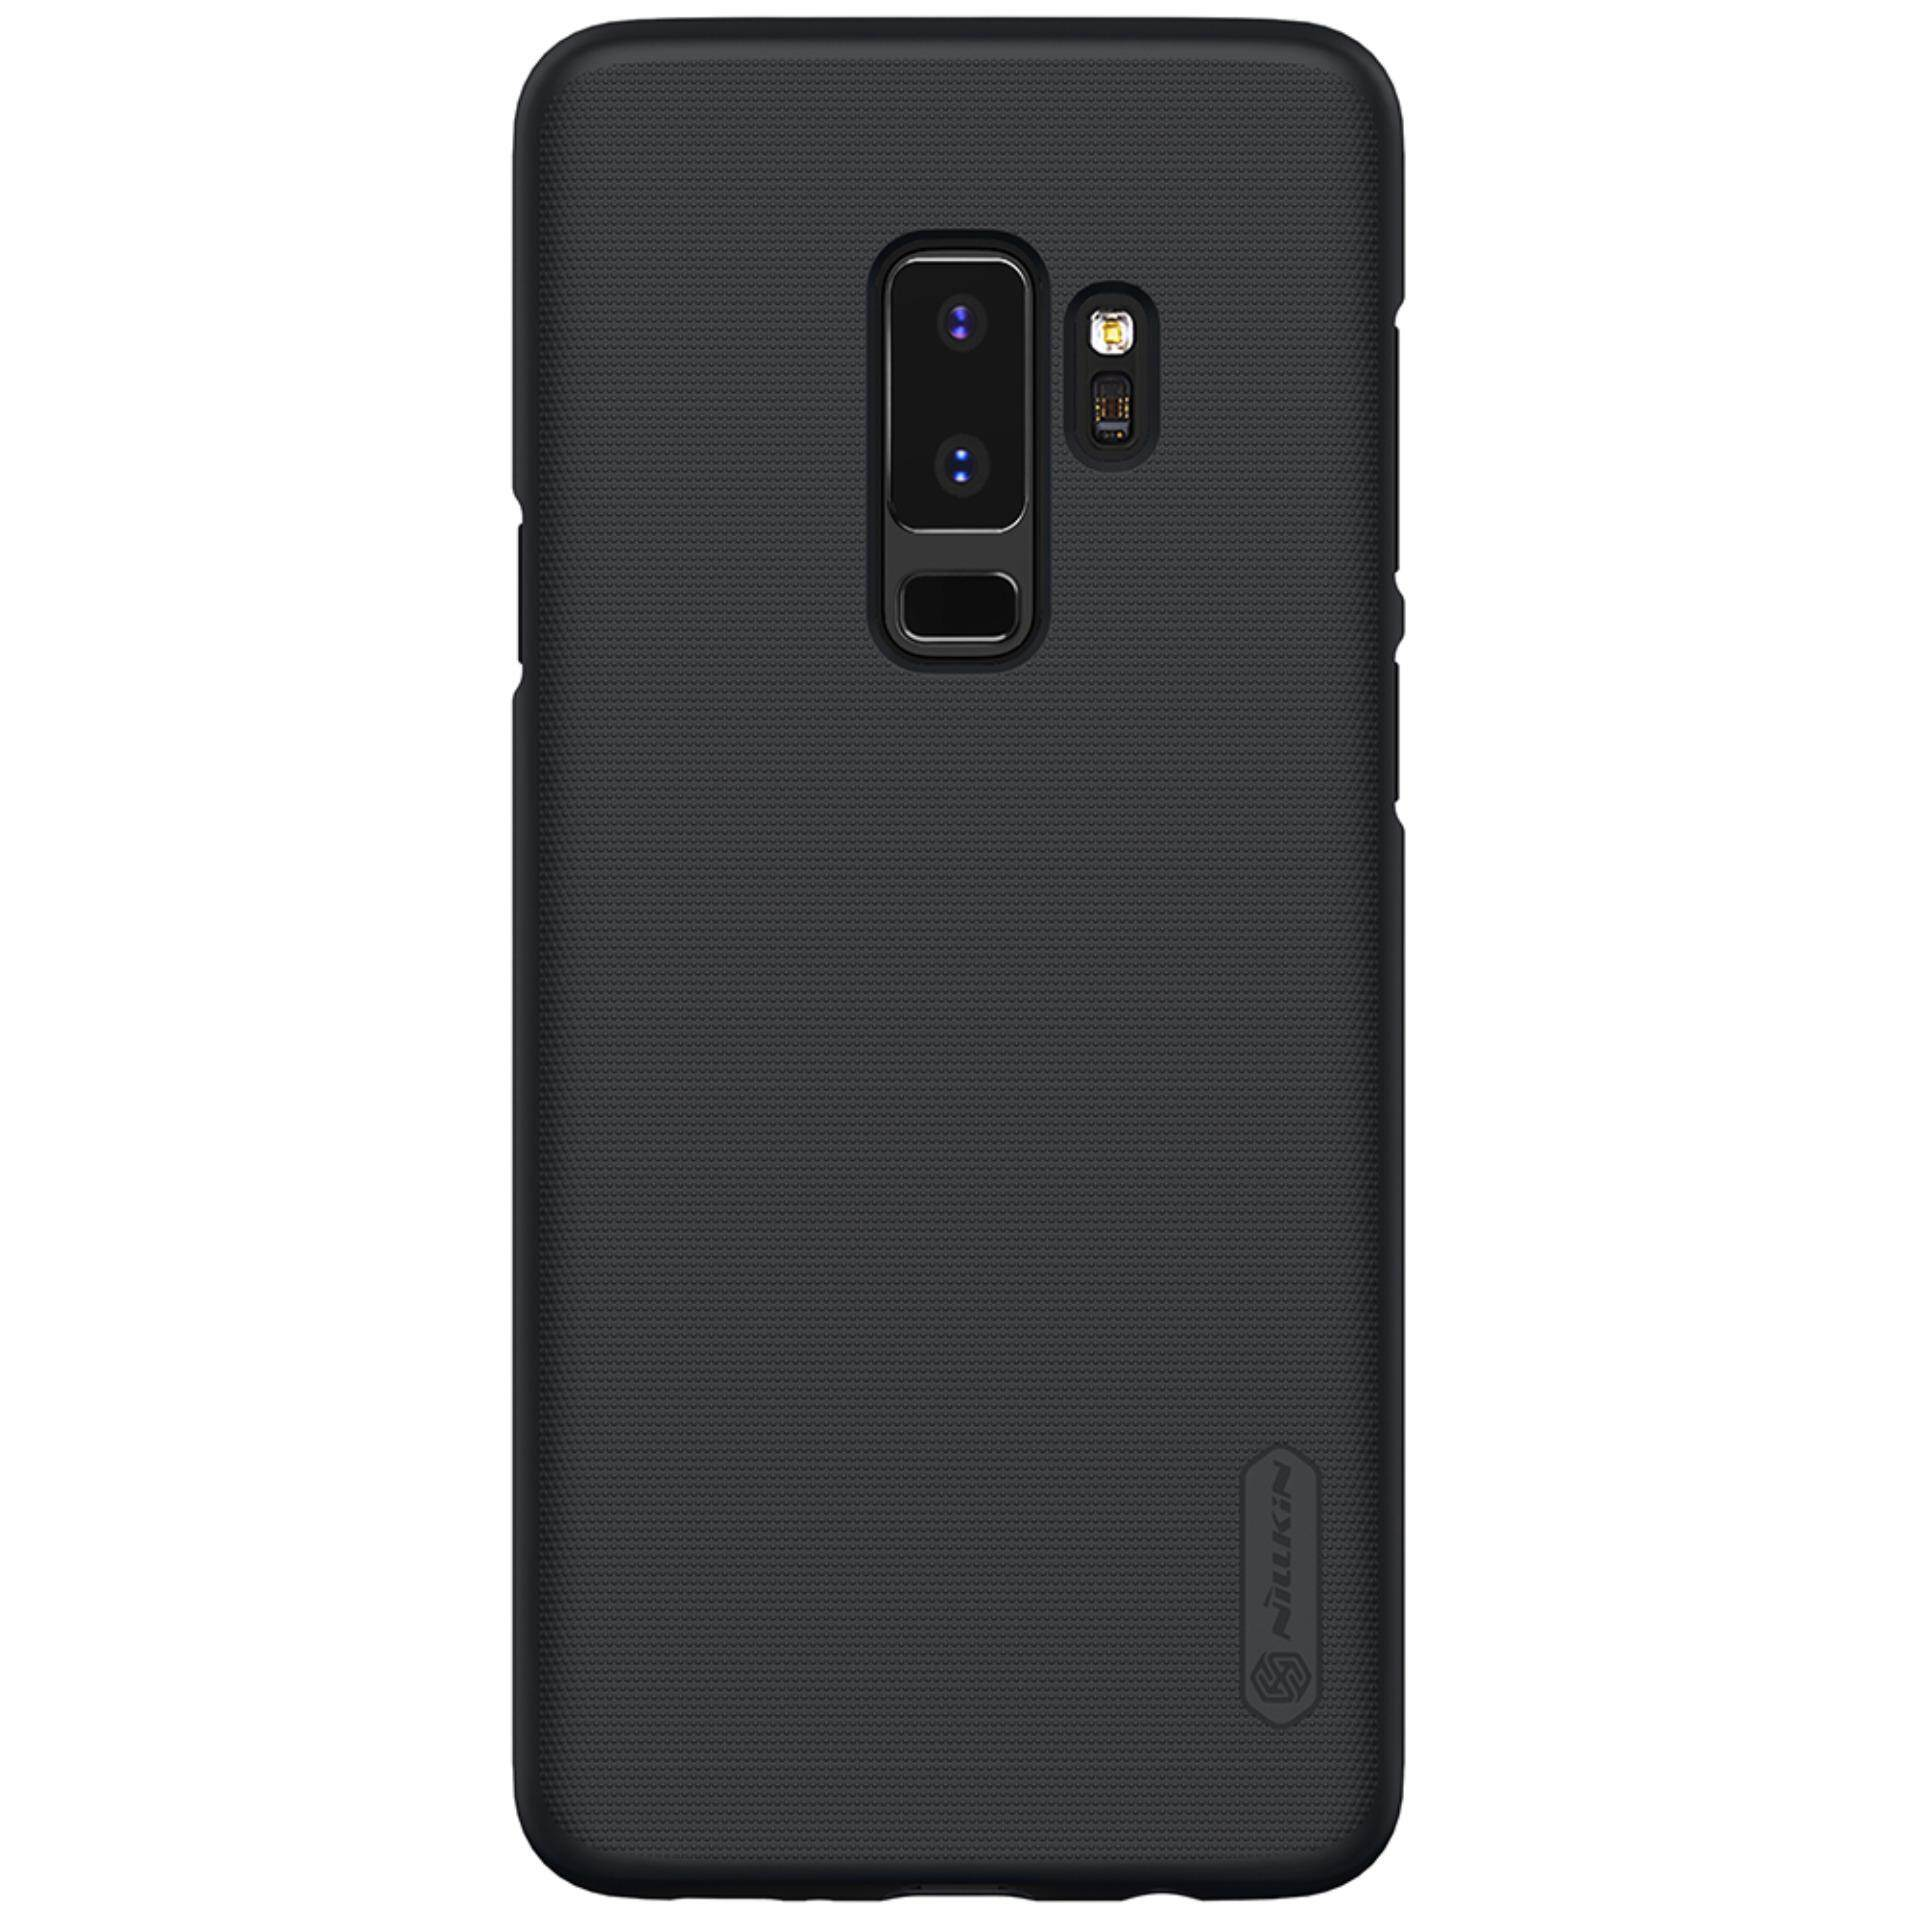 Buy Phone Cases Accessories Goospery Iphone 5 Style Lux Jelly Case Black Samsung Galaxy S9 Plus Nillkin Super Frosted Shield Ultra Thin Hard Pc